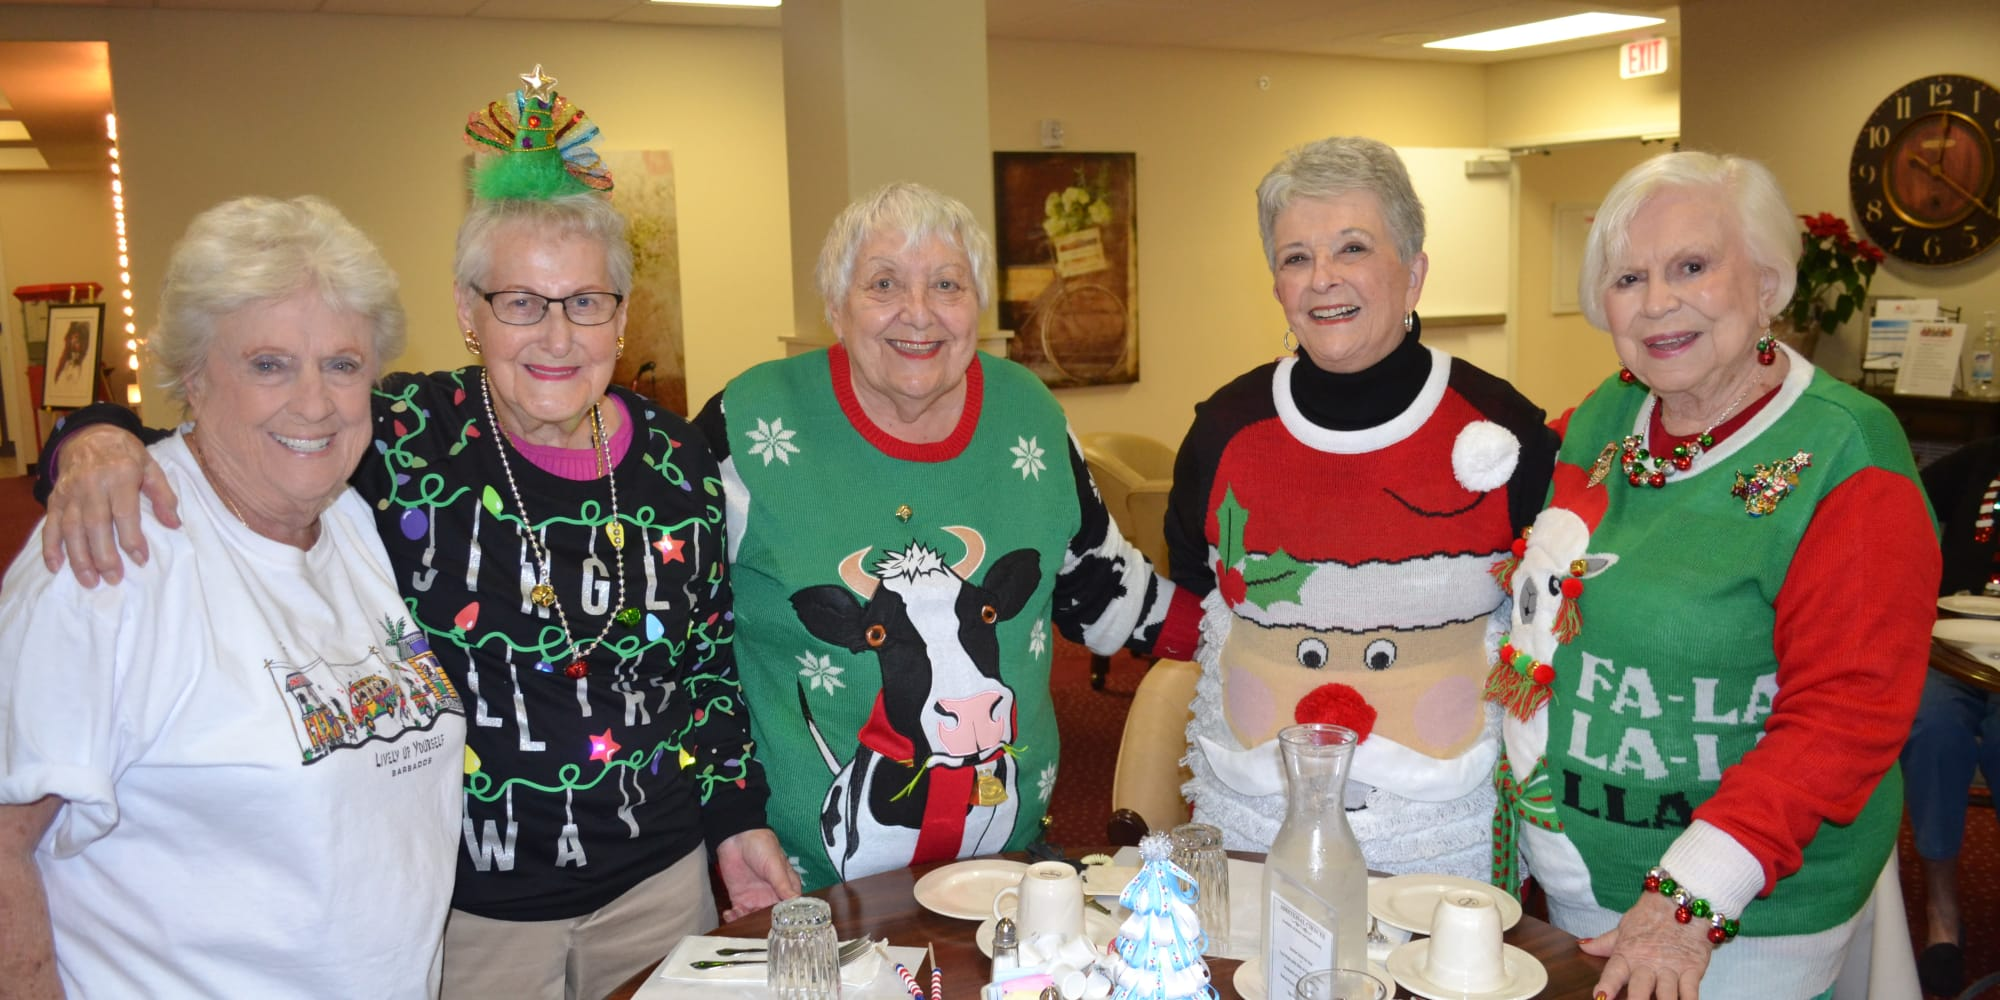 Residents in festive holiday sweaters at Victoria Park Personal Care Home in Regina, Saskatchewan